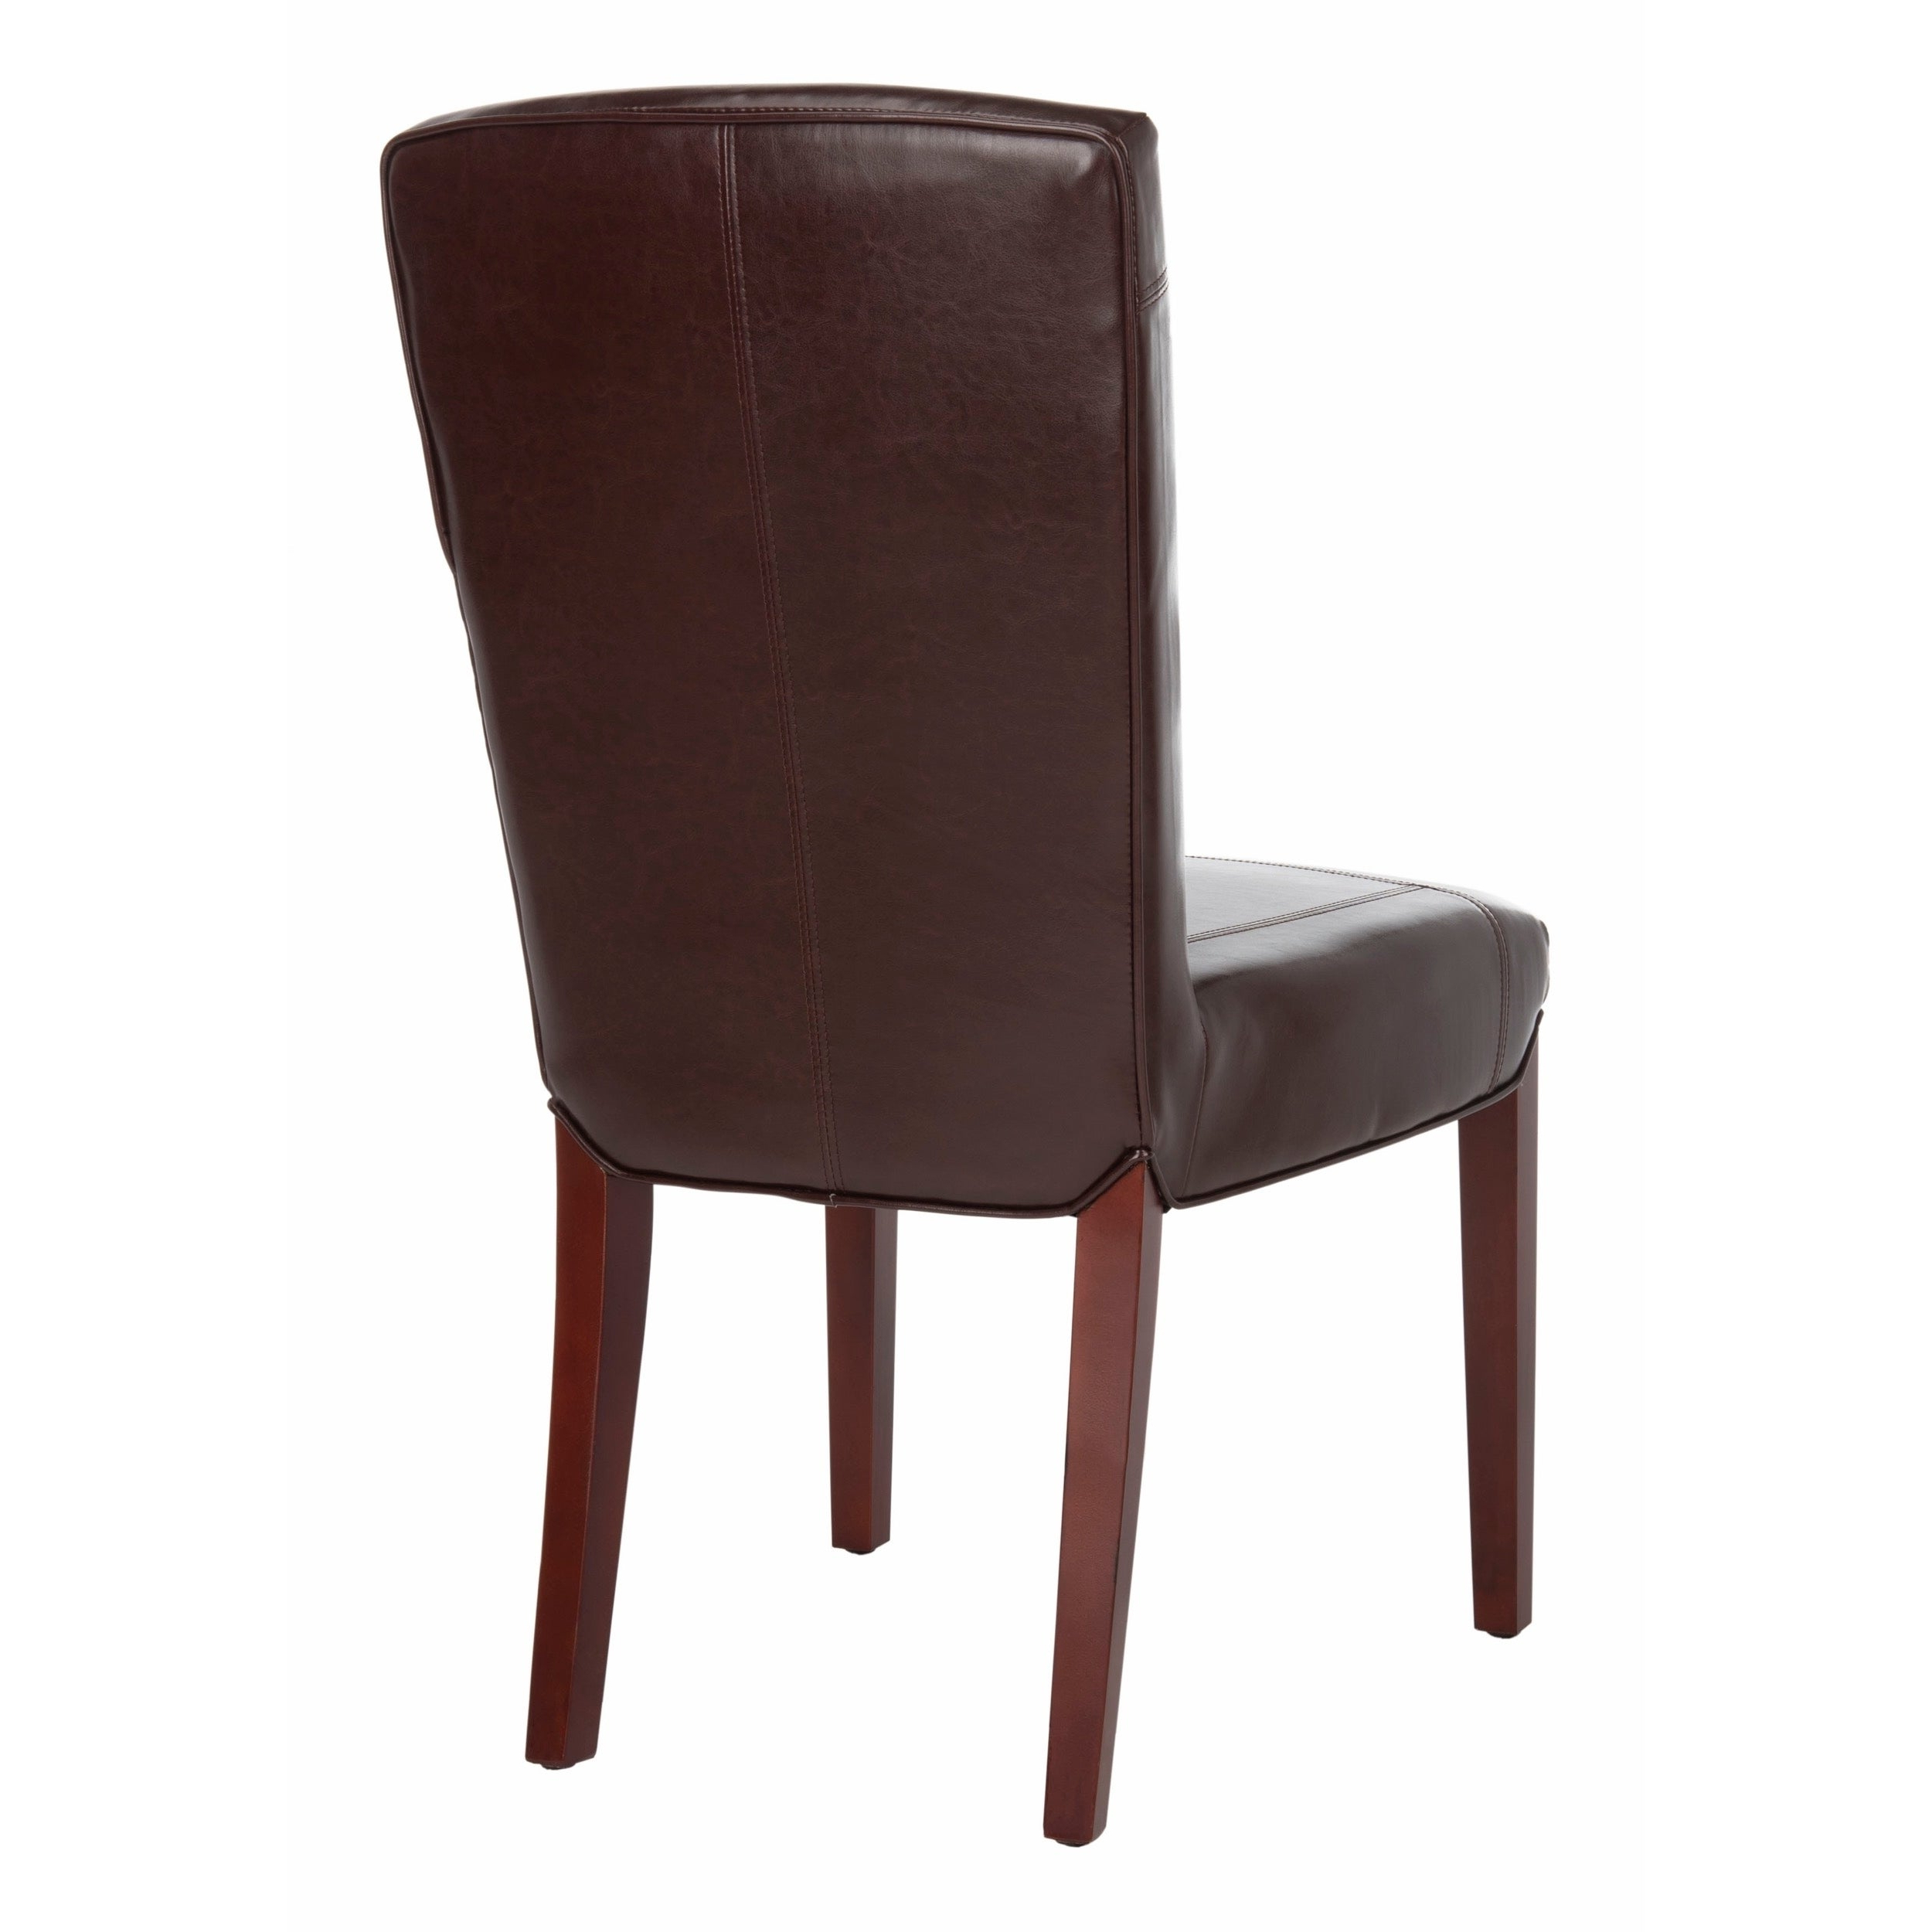 Best and Newest Bowry Reclaimed Wood Dining Tables regarding Safavieh Dining Parsons Bowery Brown Marbled Leather Dining Chairs (Set Of  2)